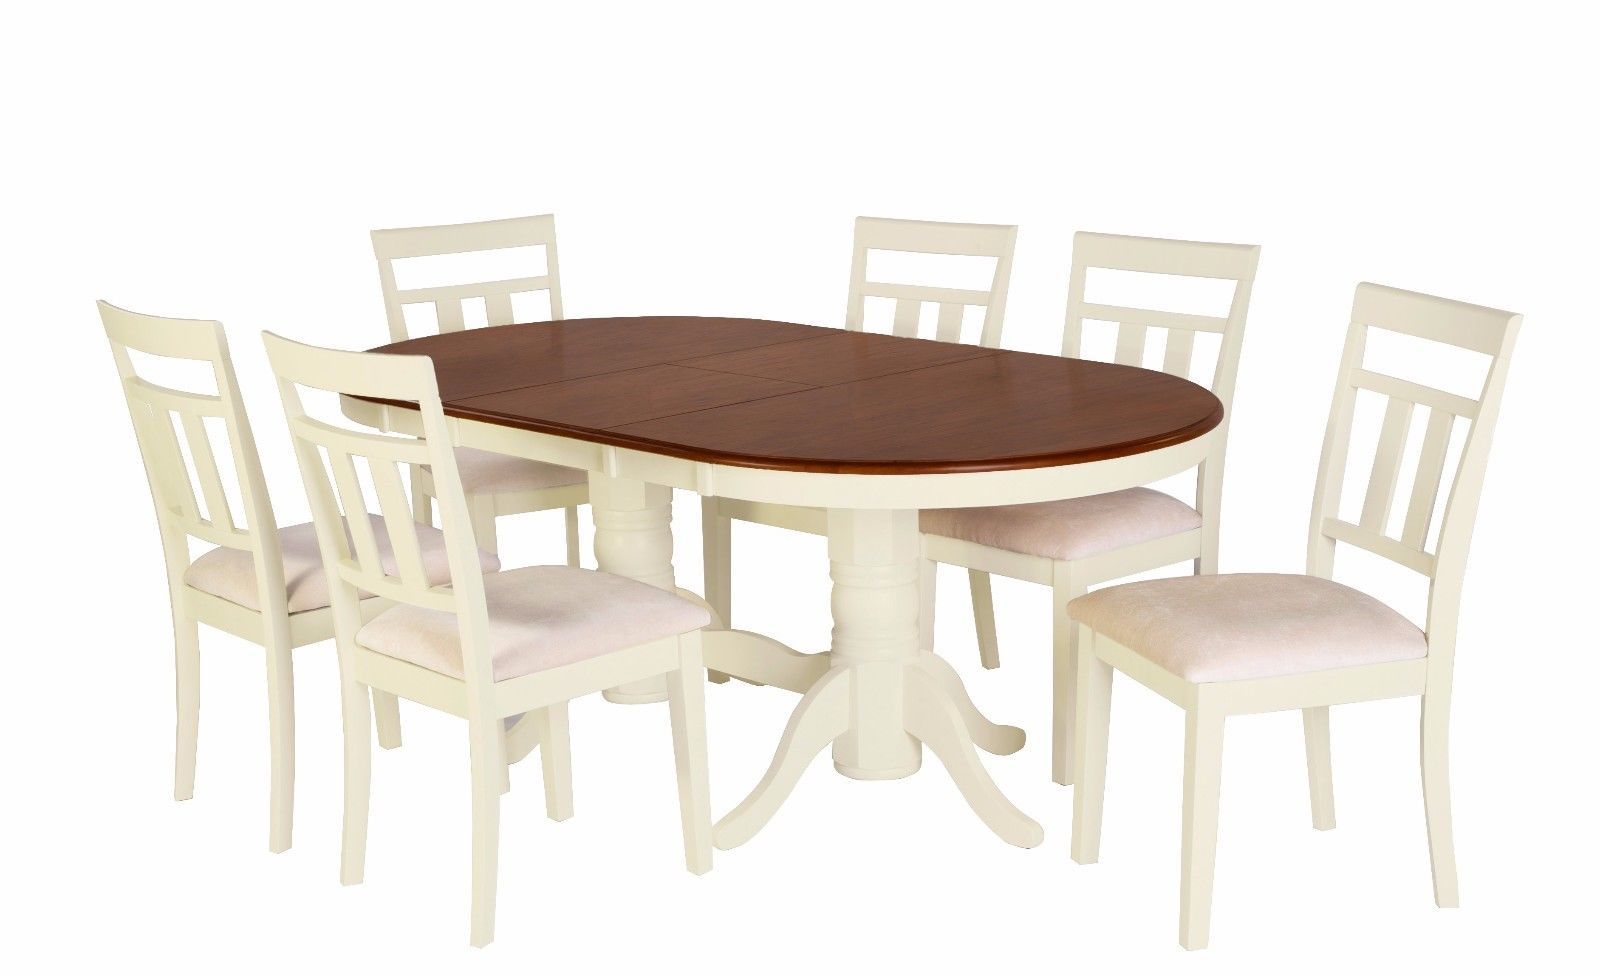 DINING ROOM KITCHEN TABLE SET 42X78 W